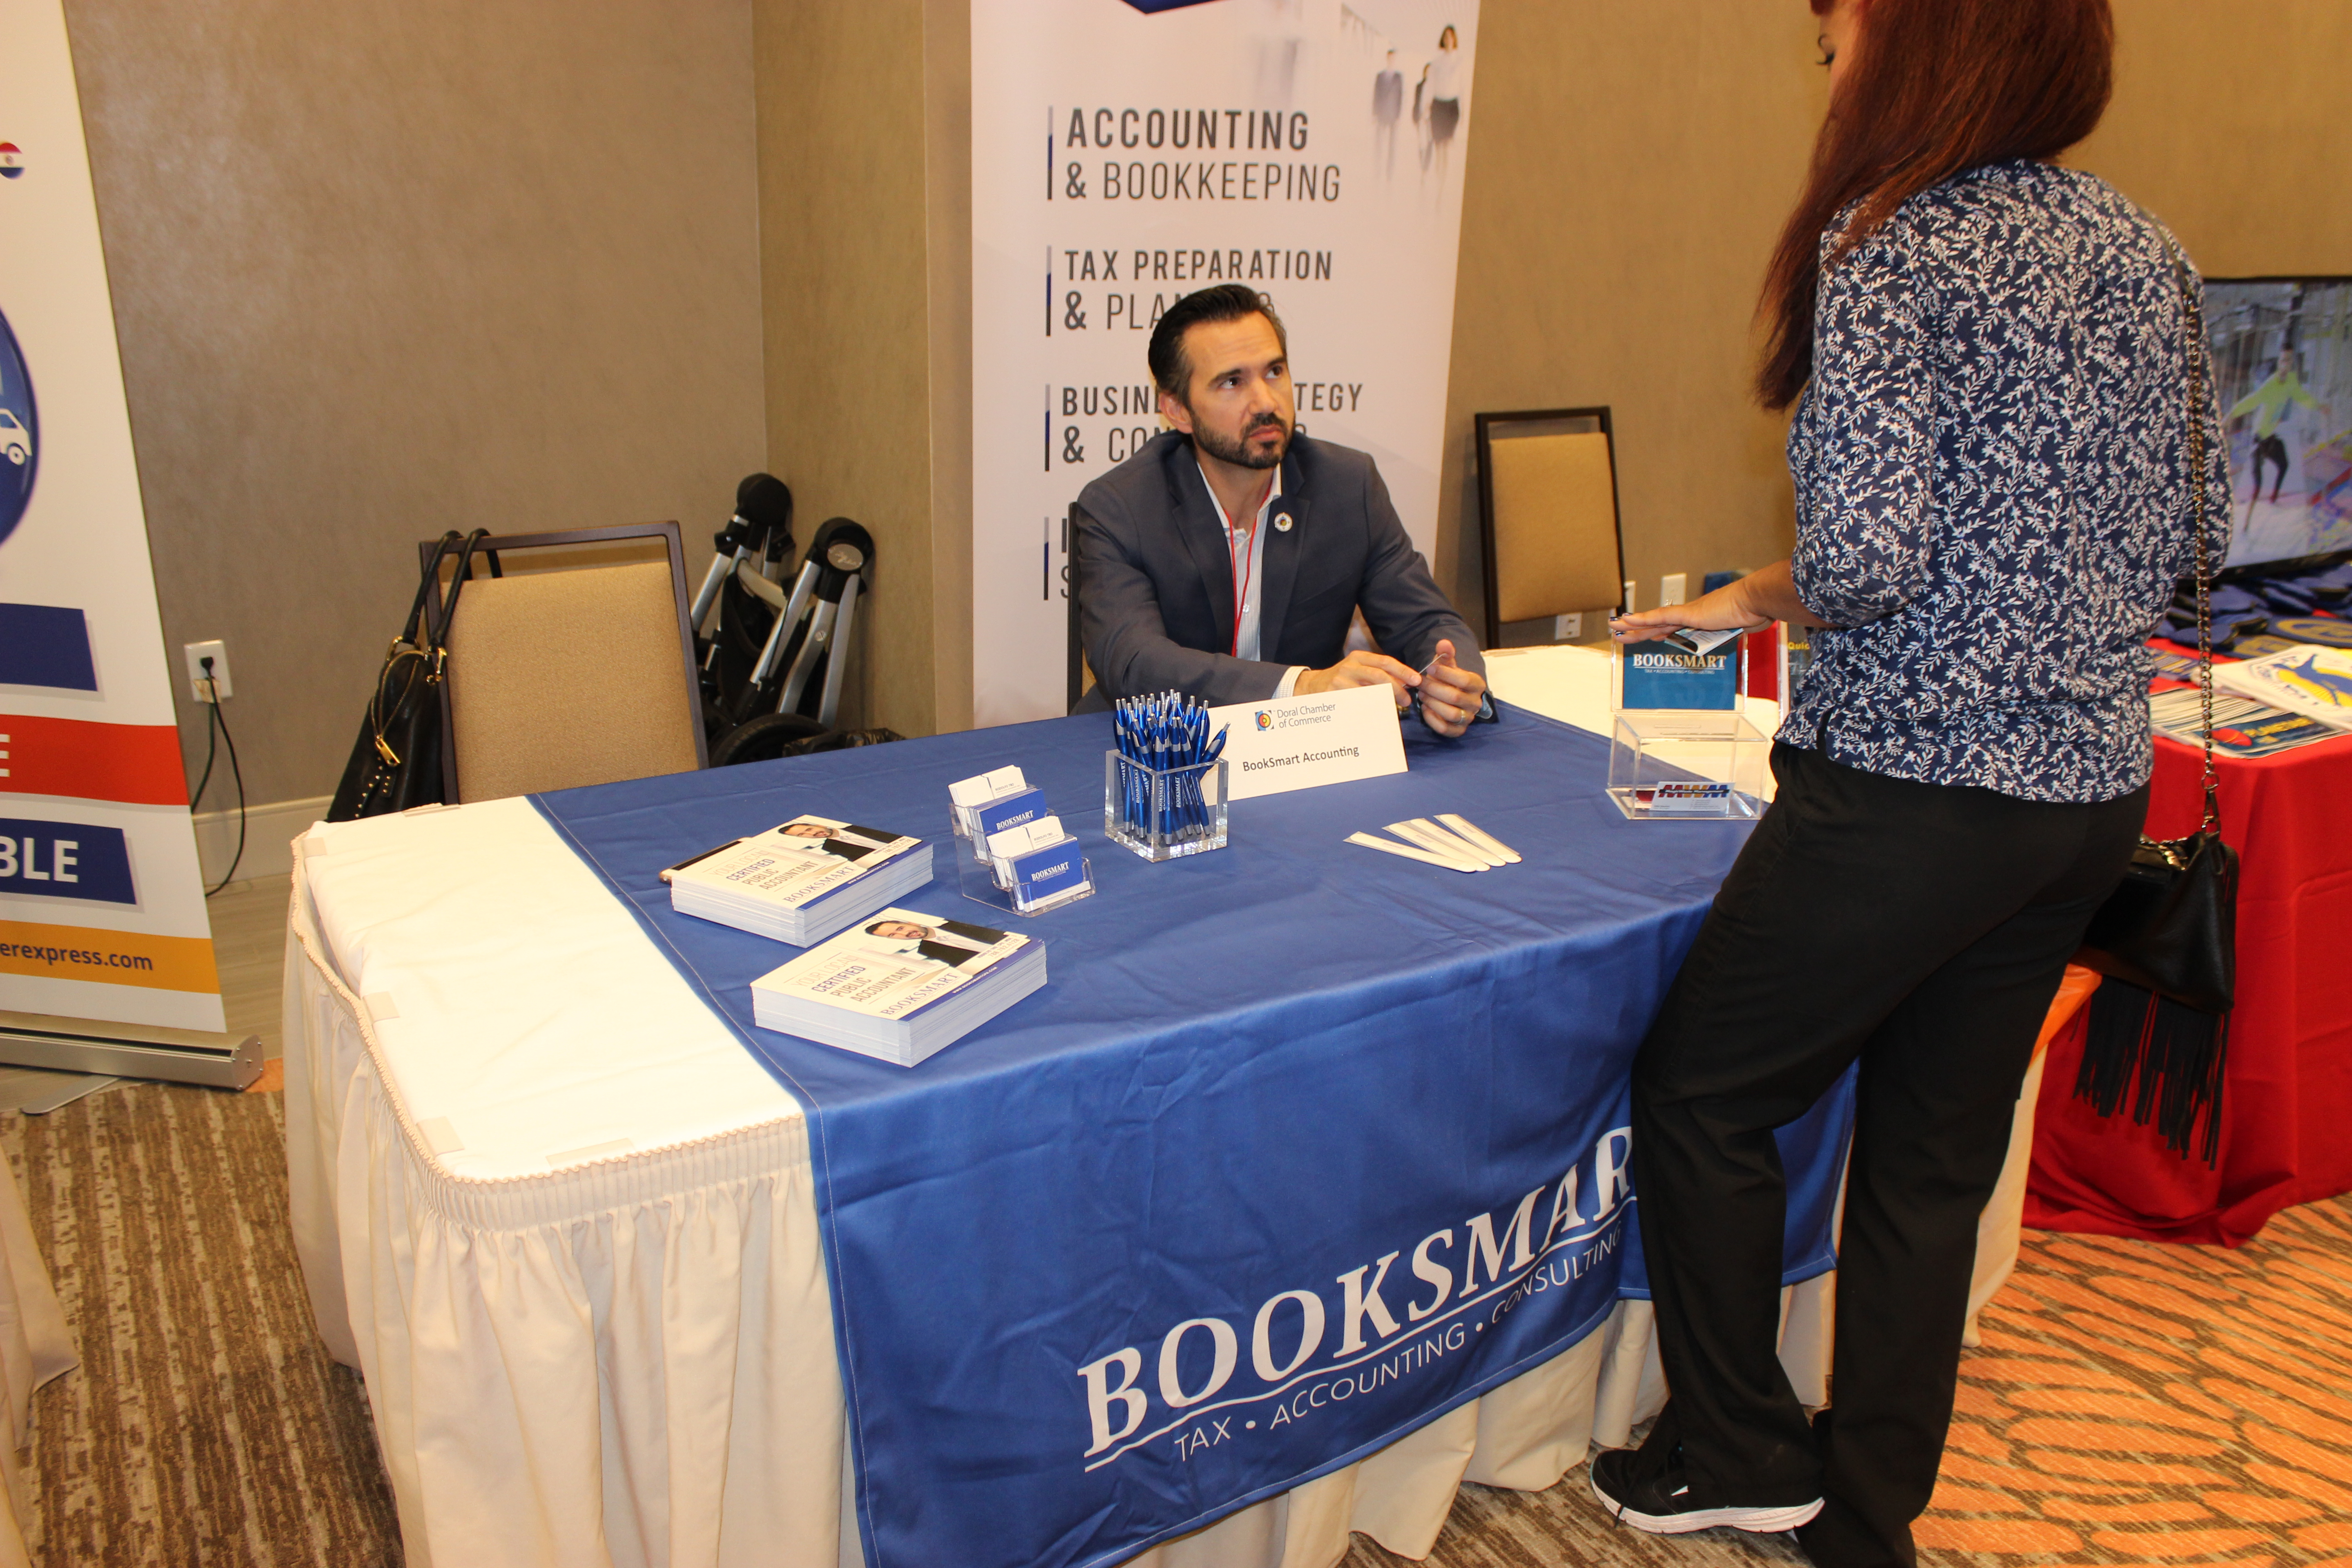 Booksmart at PowerBusiness Expo May 2017, Doral Chamber of Commerce event.